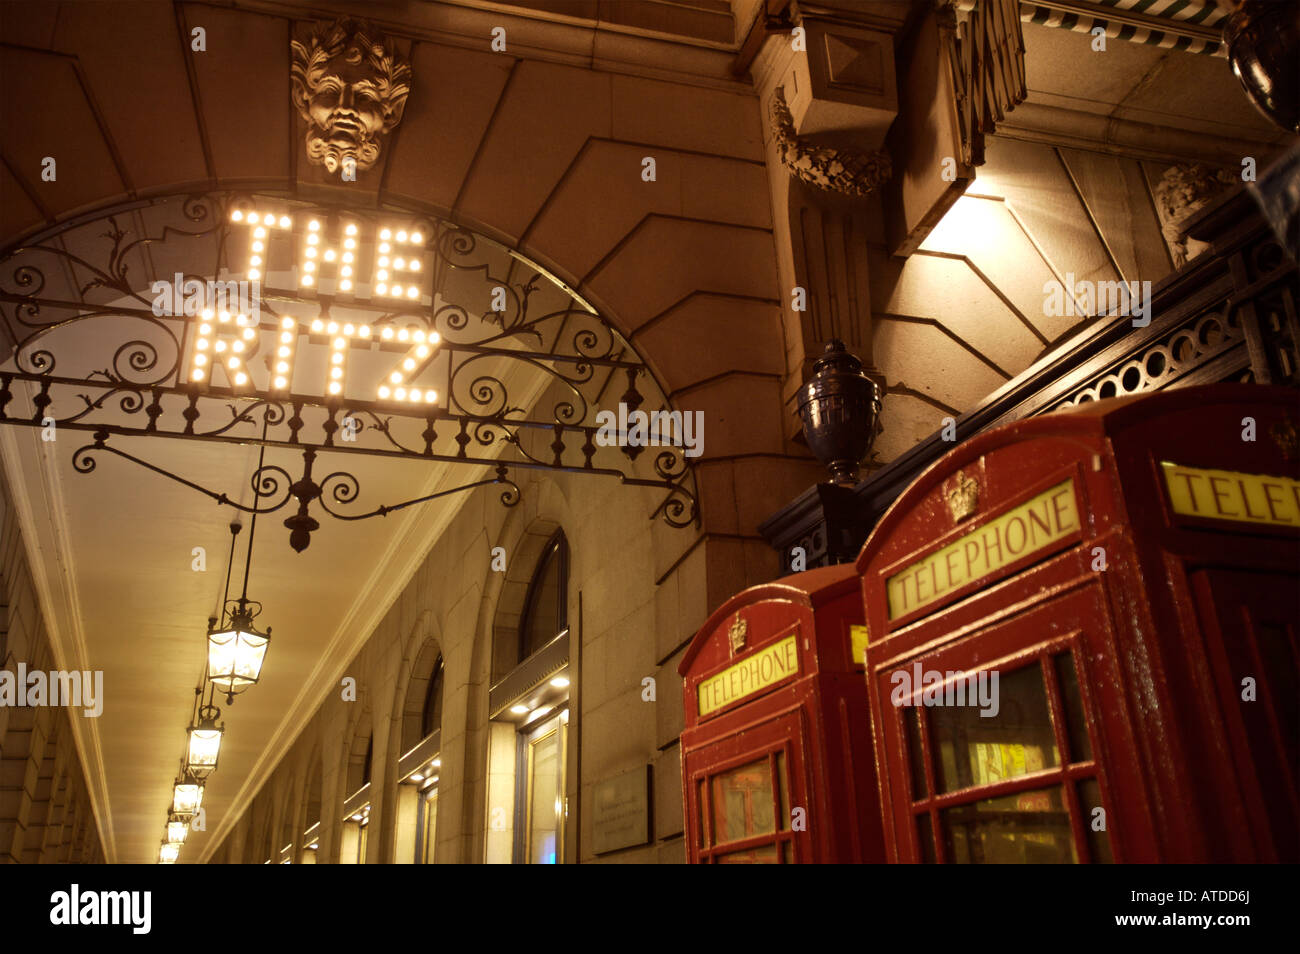 The Ritz Hotel,Piccadilly,London - Stock Image